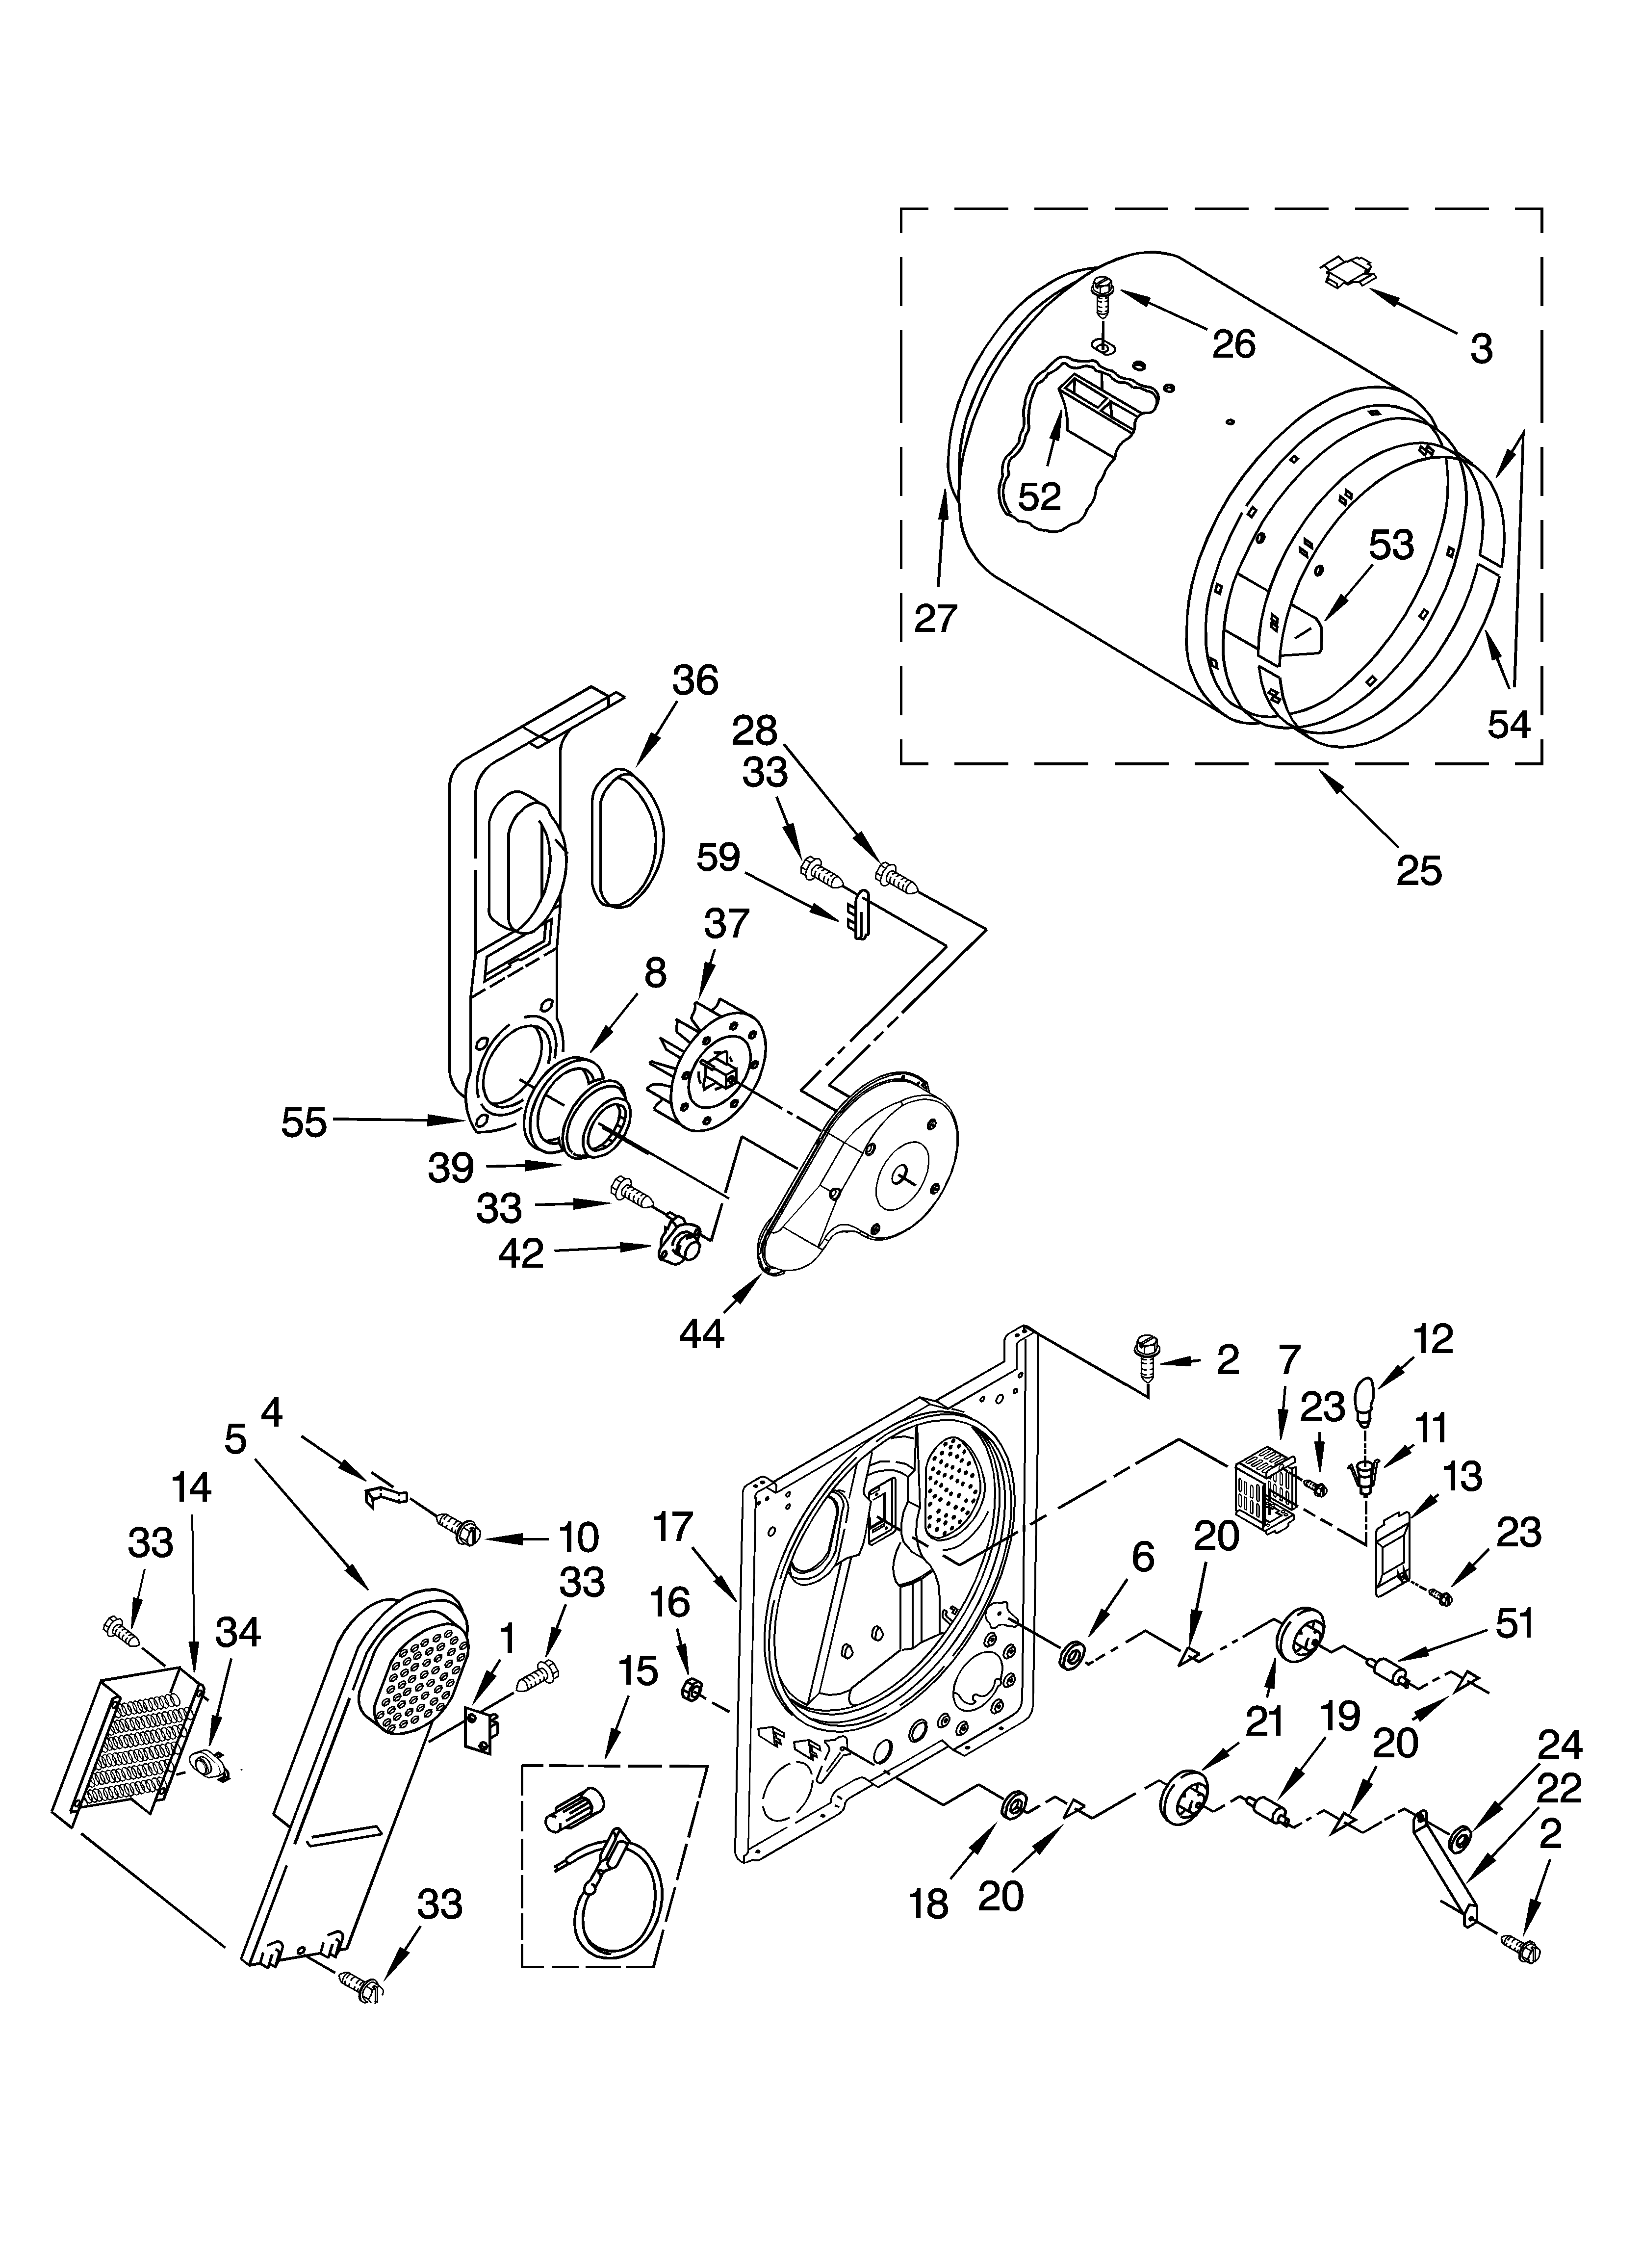 my kenmore dryer model  110 66642501 has stopped heating